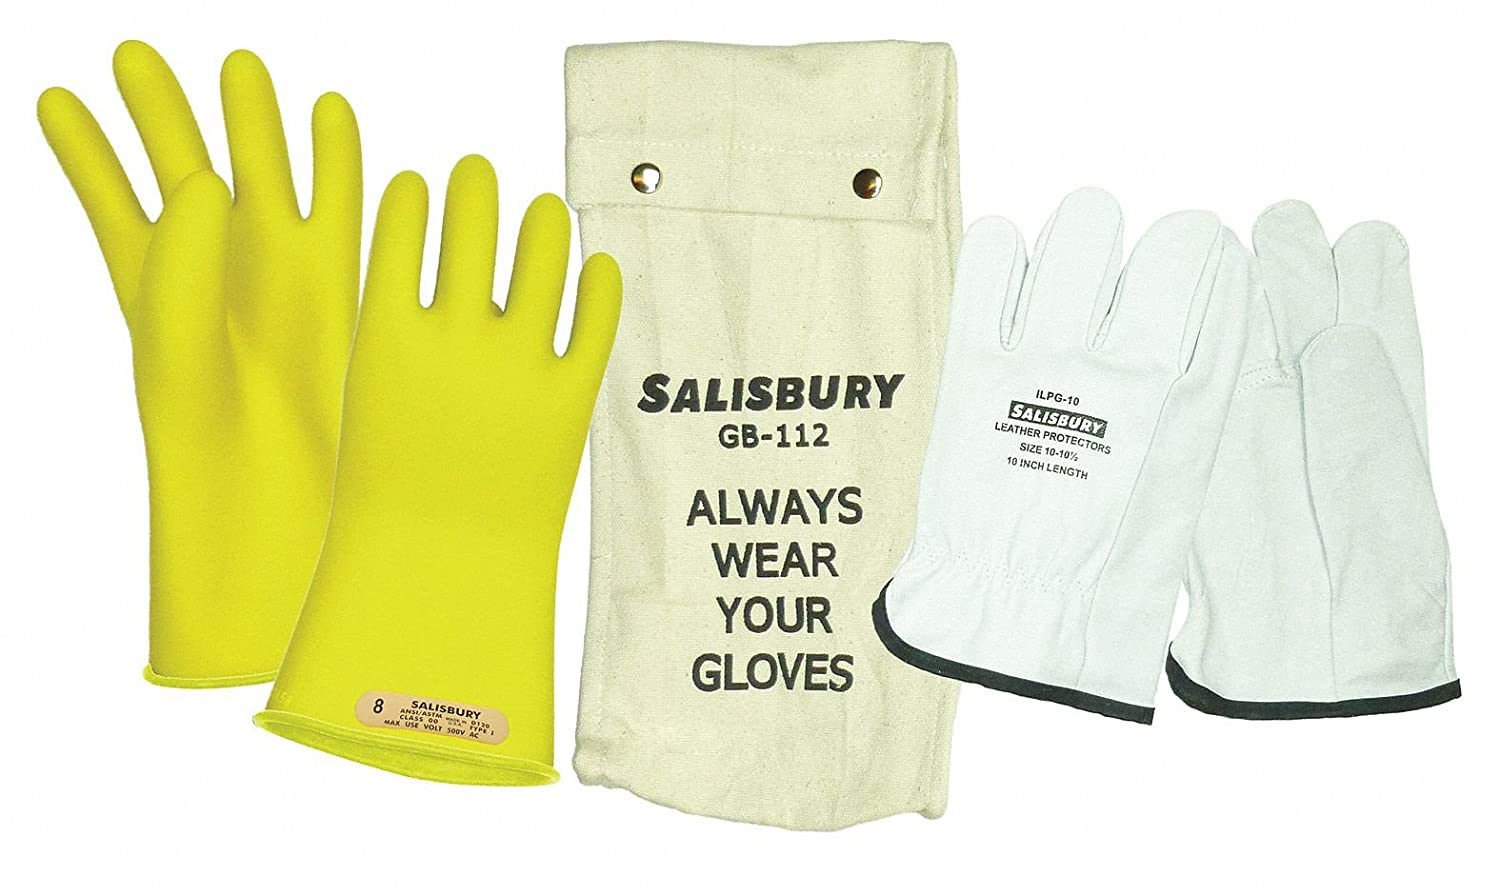 Size 10; One Pair 11L Class 0 Yellow Salisbury by Honeywell GK011Y10 Insulated Glove Kit